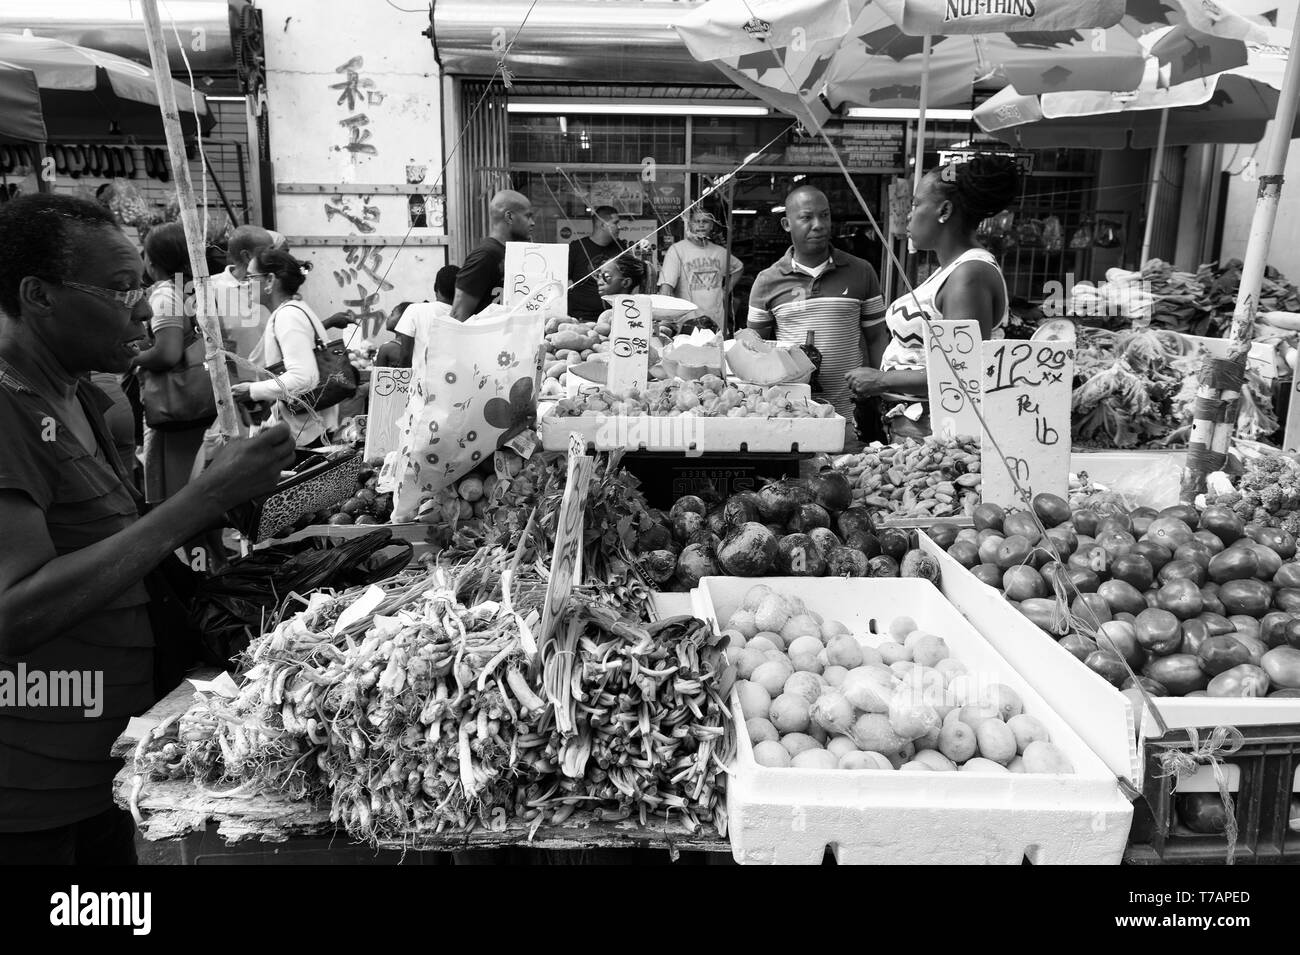 Port of spain, Trinidad and Tobago - November 28, 2015: fresh vegetables and fruit displayed for sale on local south market outdoors on streetscape background - Stock Image